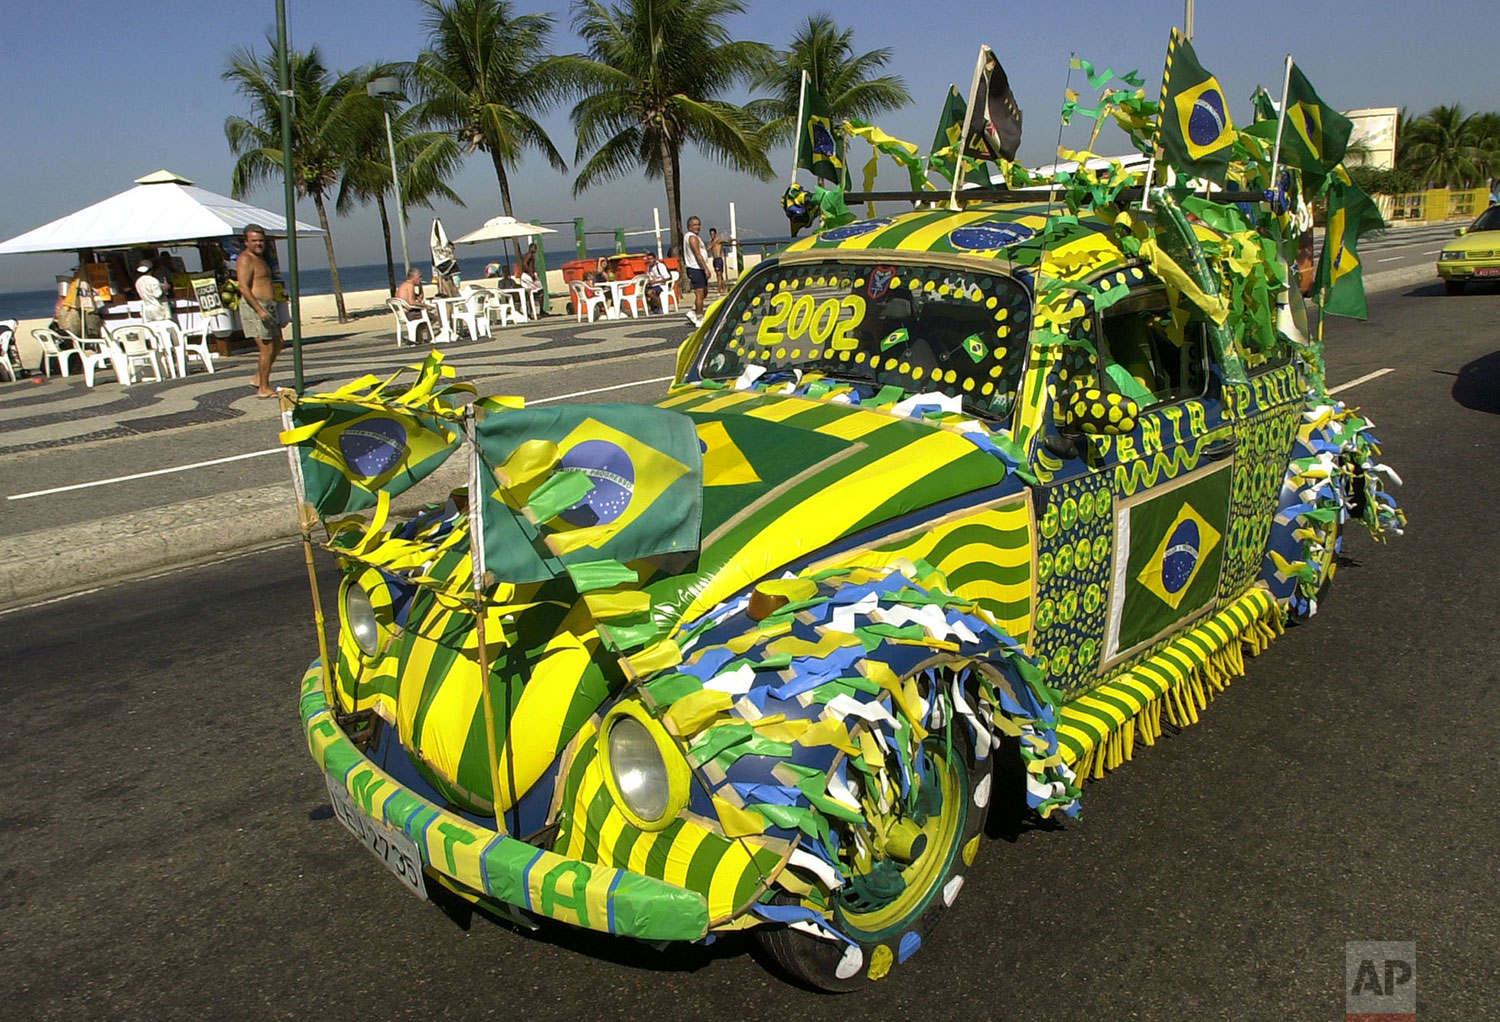 A Volkswagen Beetle, known as Fusca in Brazil, painted in Brazilian colors on the eve of the Brazilian team's next match of the World Cup, drives down Copacabana Beach in Rio de Janeiro, Brazil, June 12, 2002. (AP Photo/Douglas Engle)